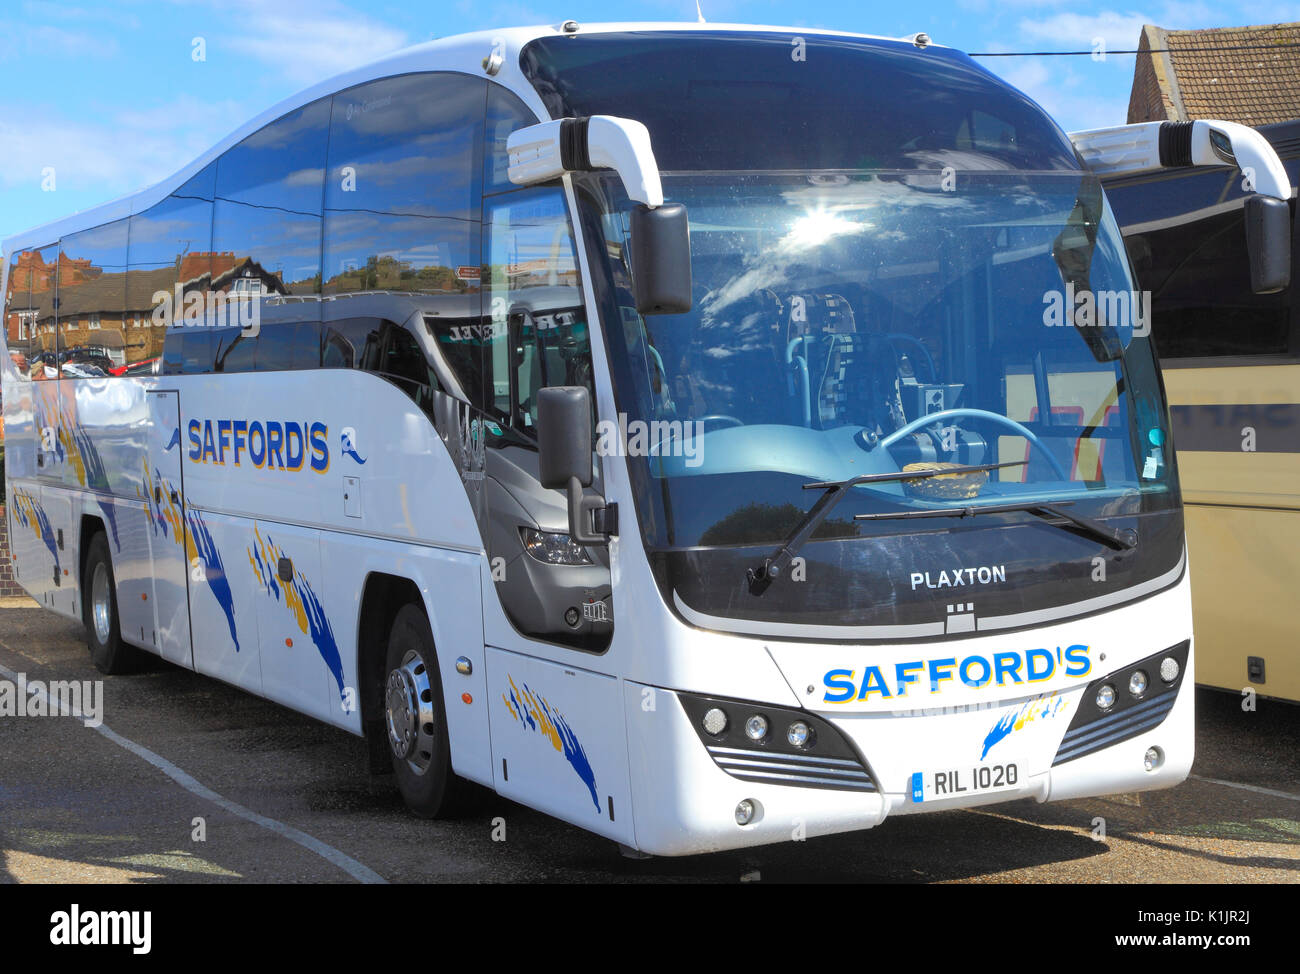 Saffords Coahes, coach, excursions, voyage, entreprise, entreprises, excursion, excursions, transport, England, UK Photo Stock